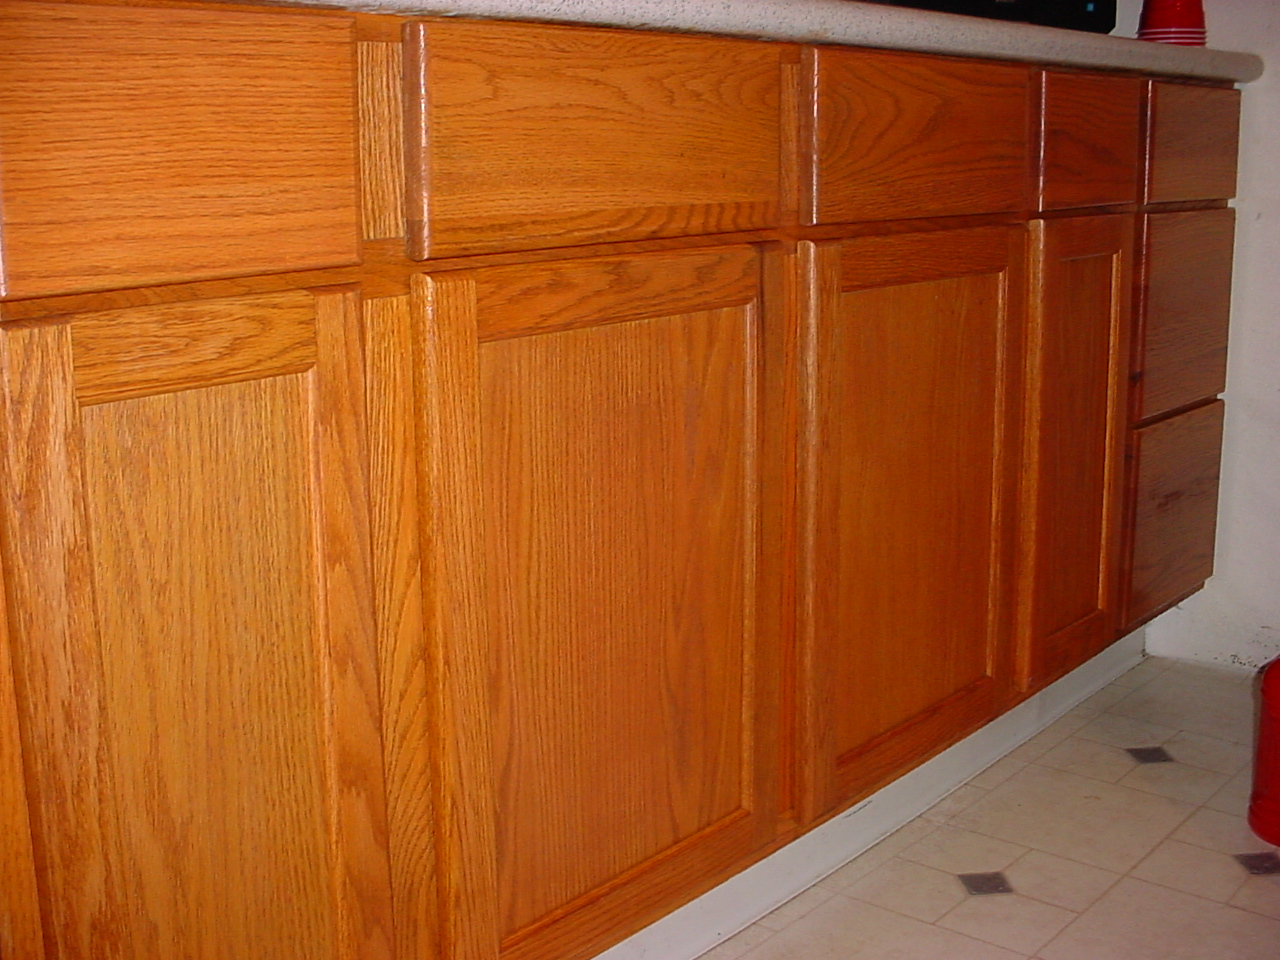 justlikenewcabinets wordpress staining kitchen cabinets Here s